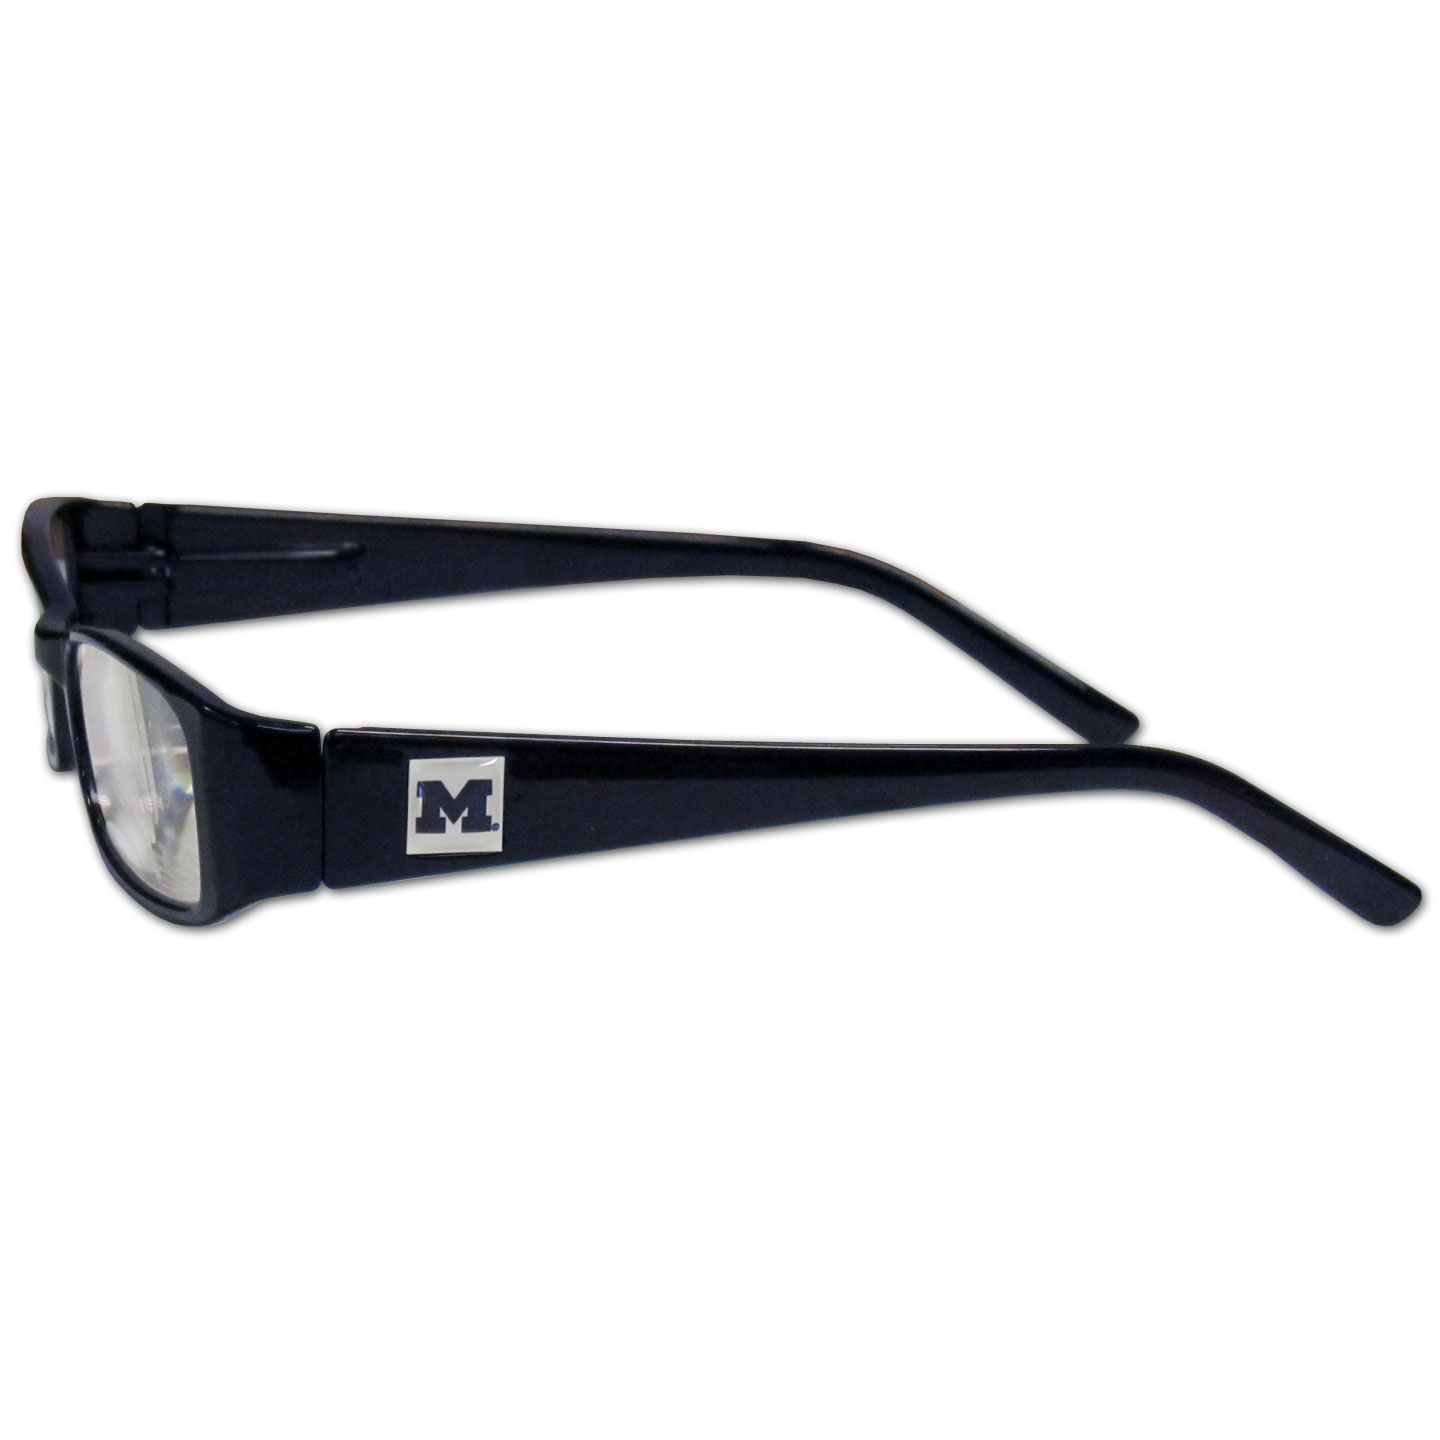 Michigan Wolverines Reading Glasses +1.25 - Our Michigan Wolverines reading glasses are 5.25 inches wide and feature the team logo on each arm. Magnification Power 1.25